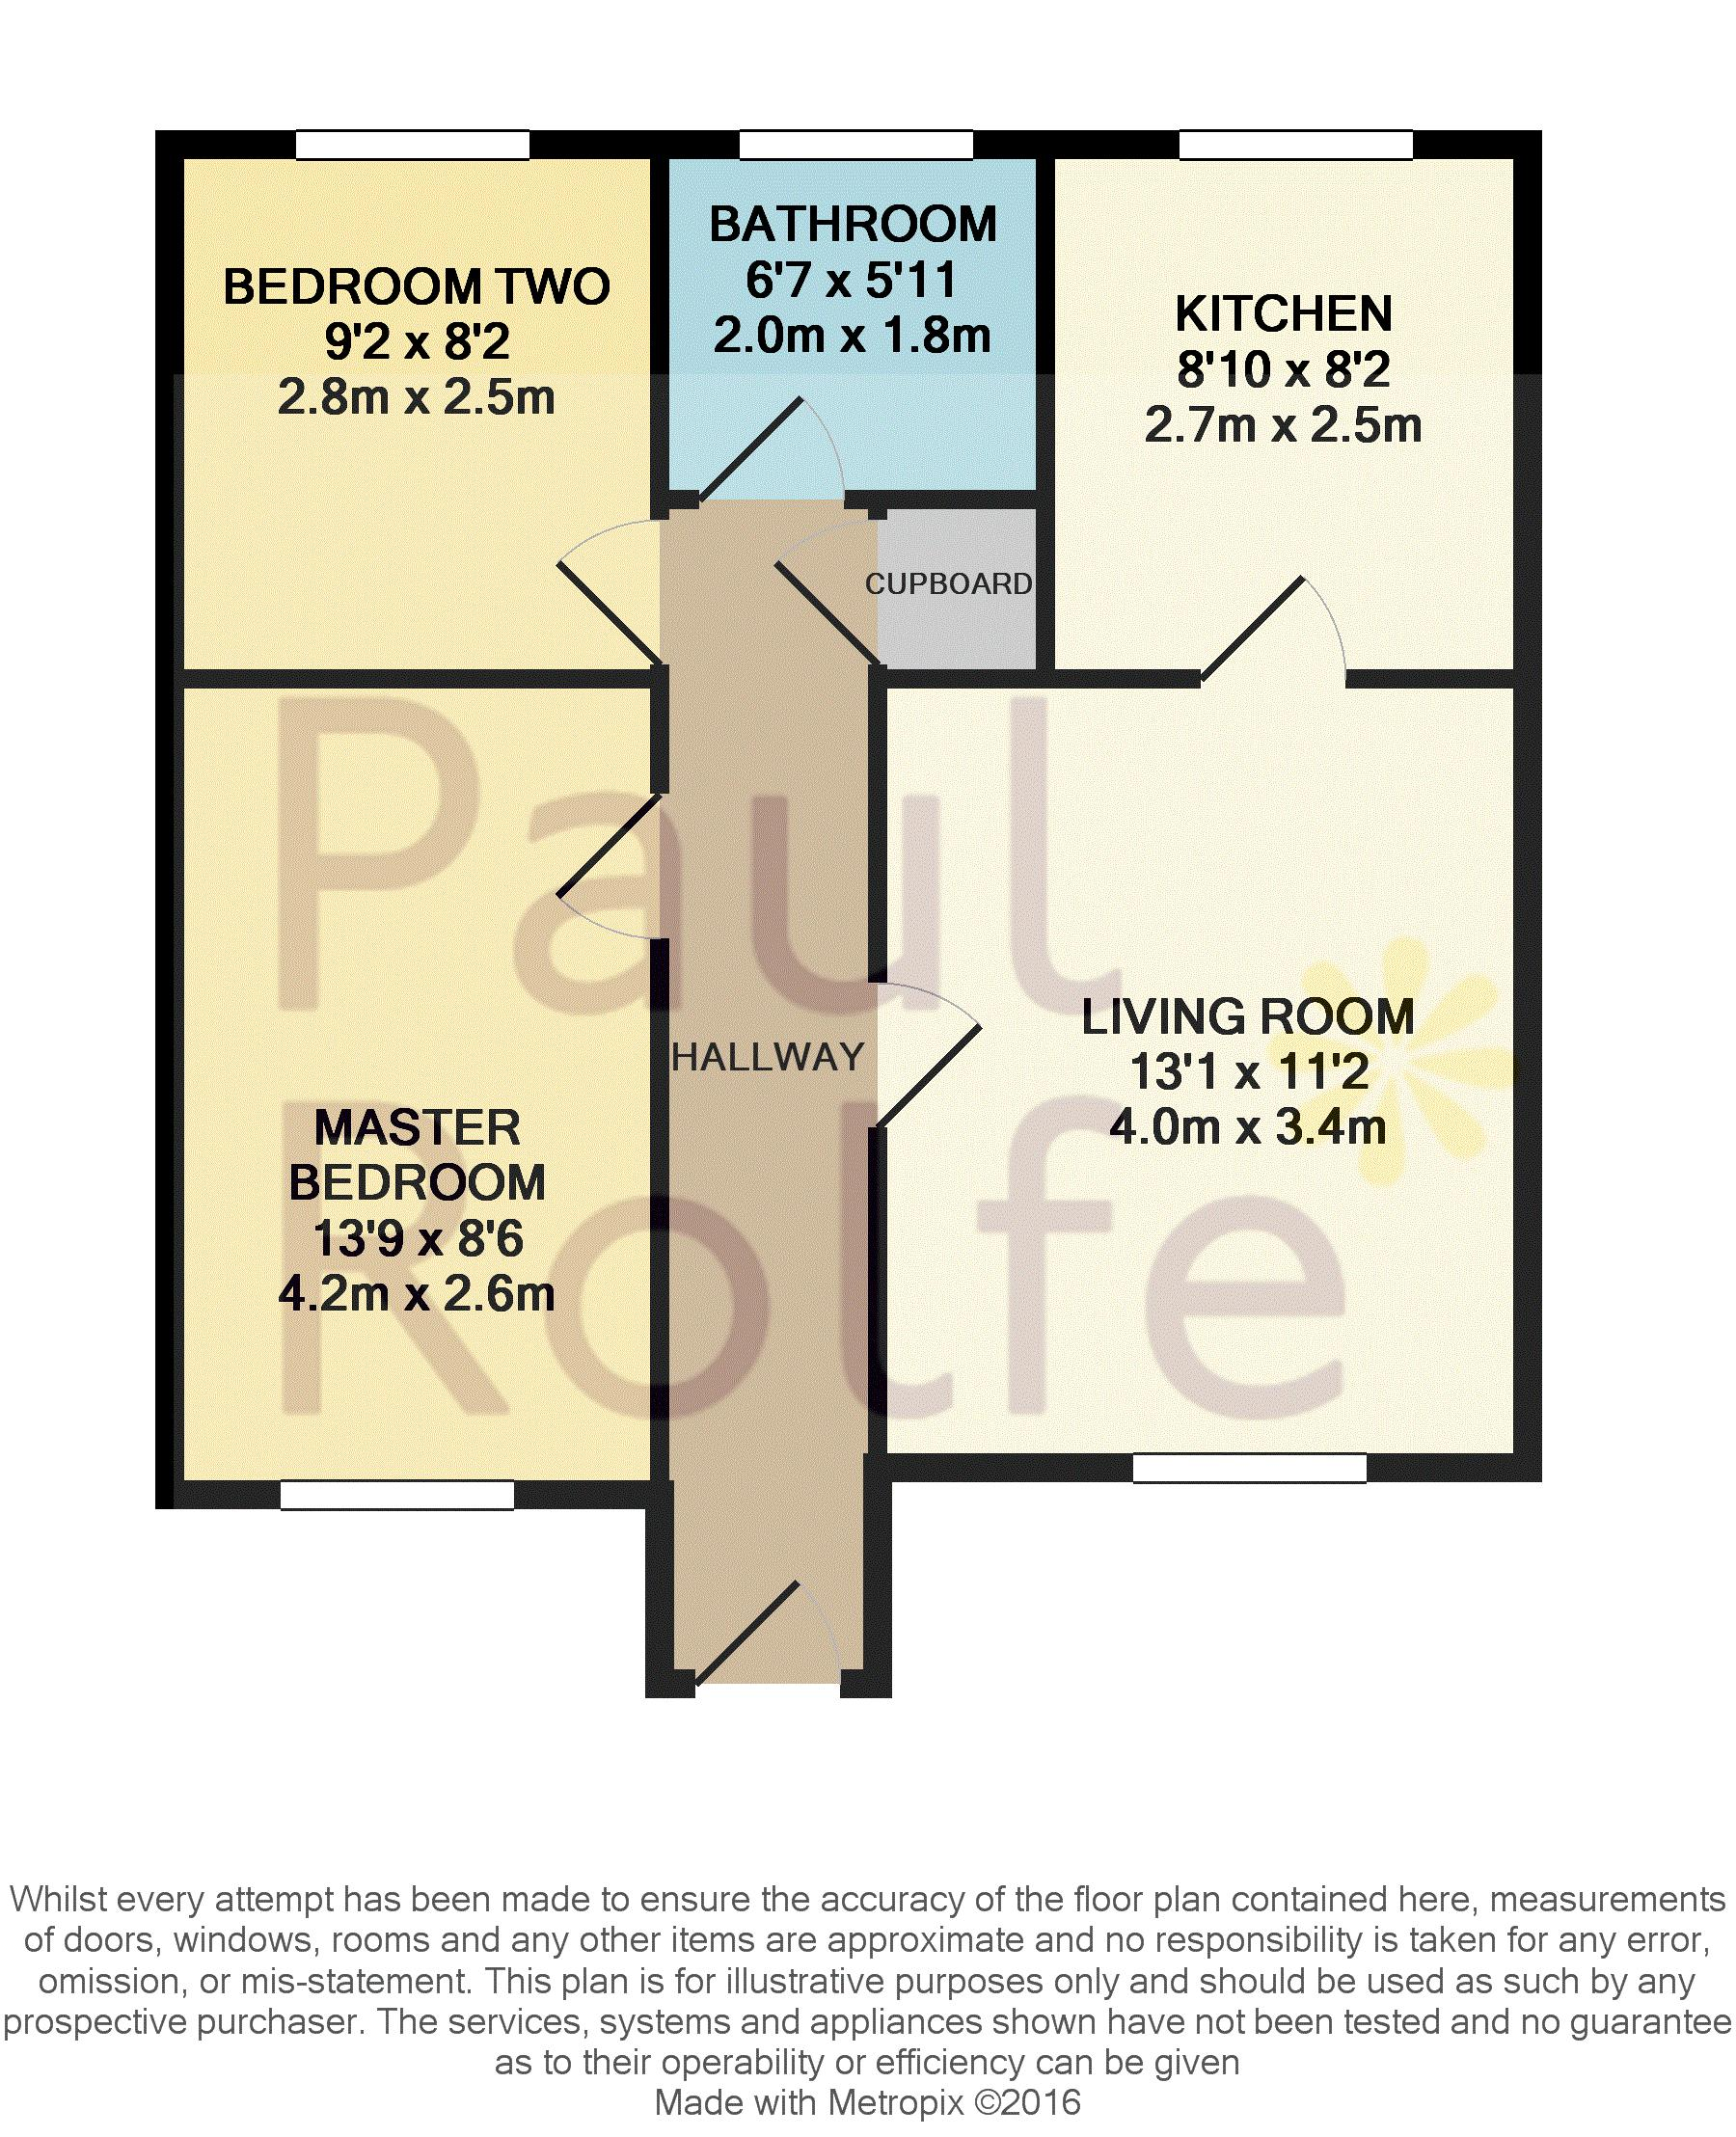 South philpingstone lane bo 39 ness eh51 2 bedroom flat for for Cuisine kitchen polmont